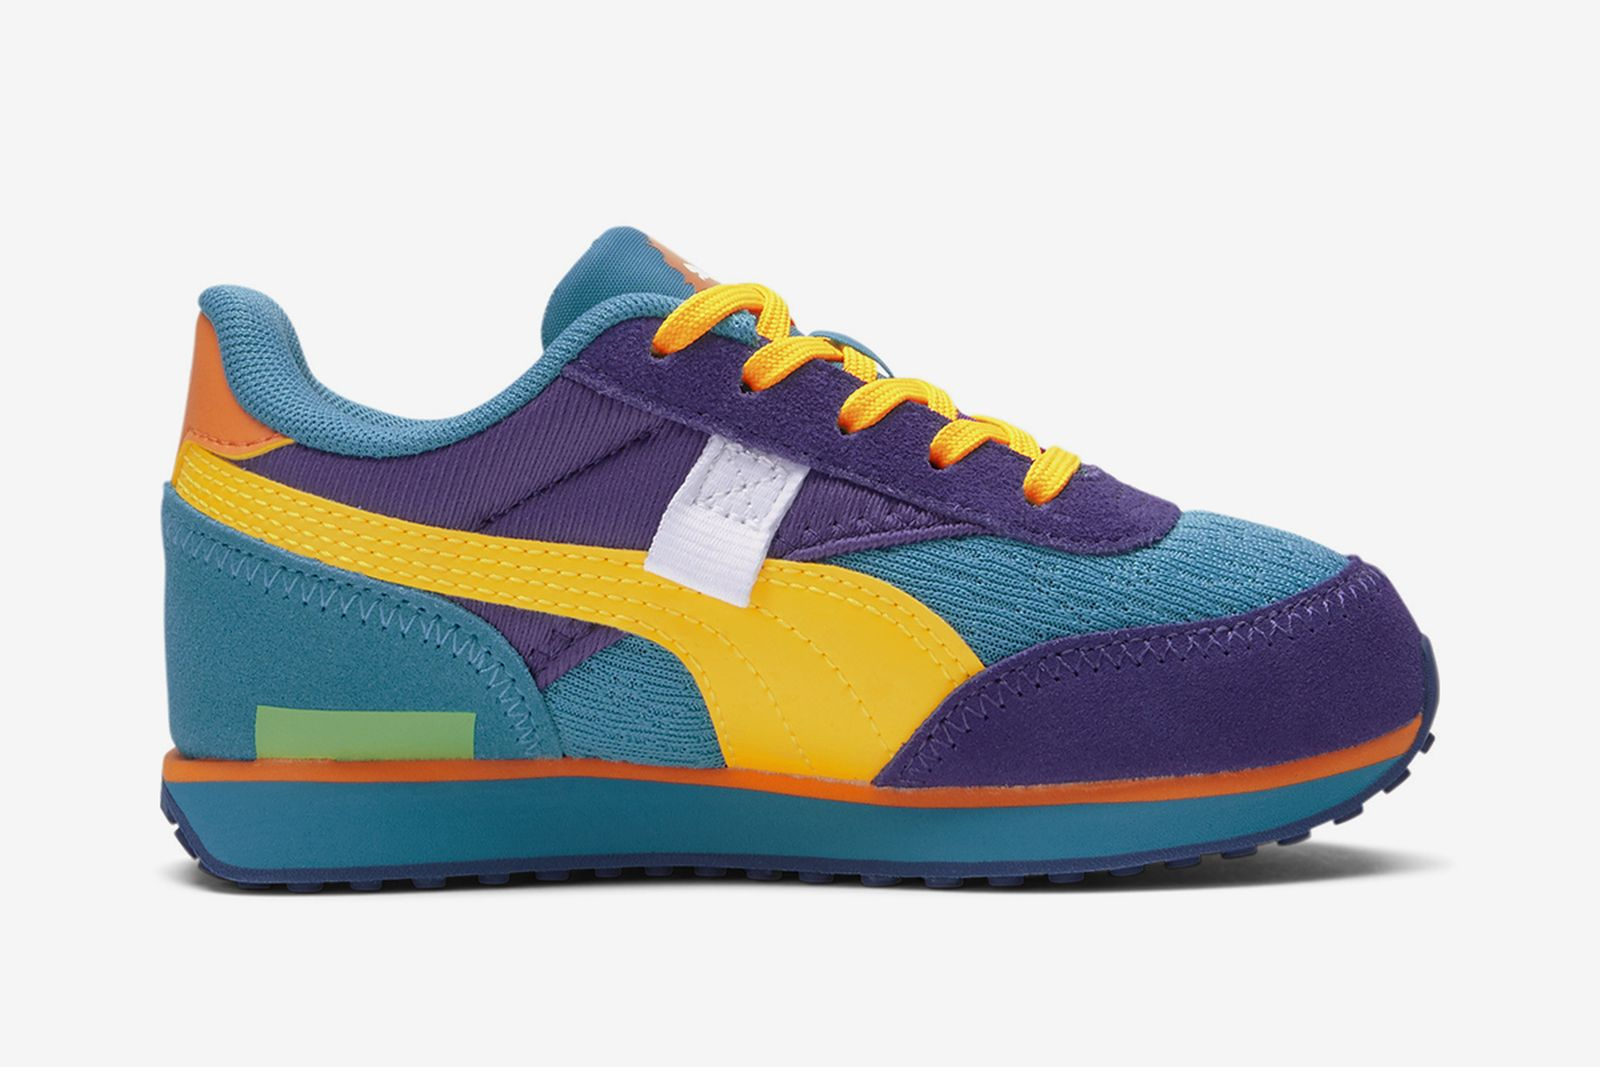 puma-rugrats-collection-release-date-price-06